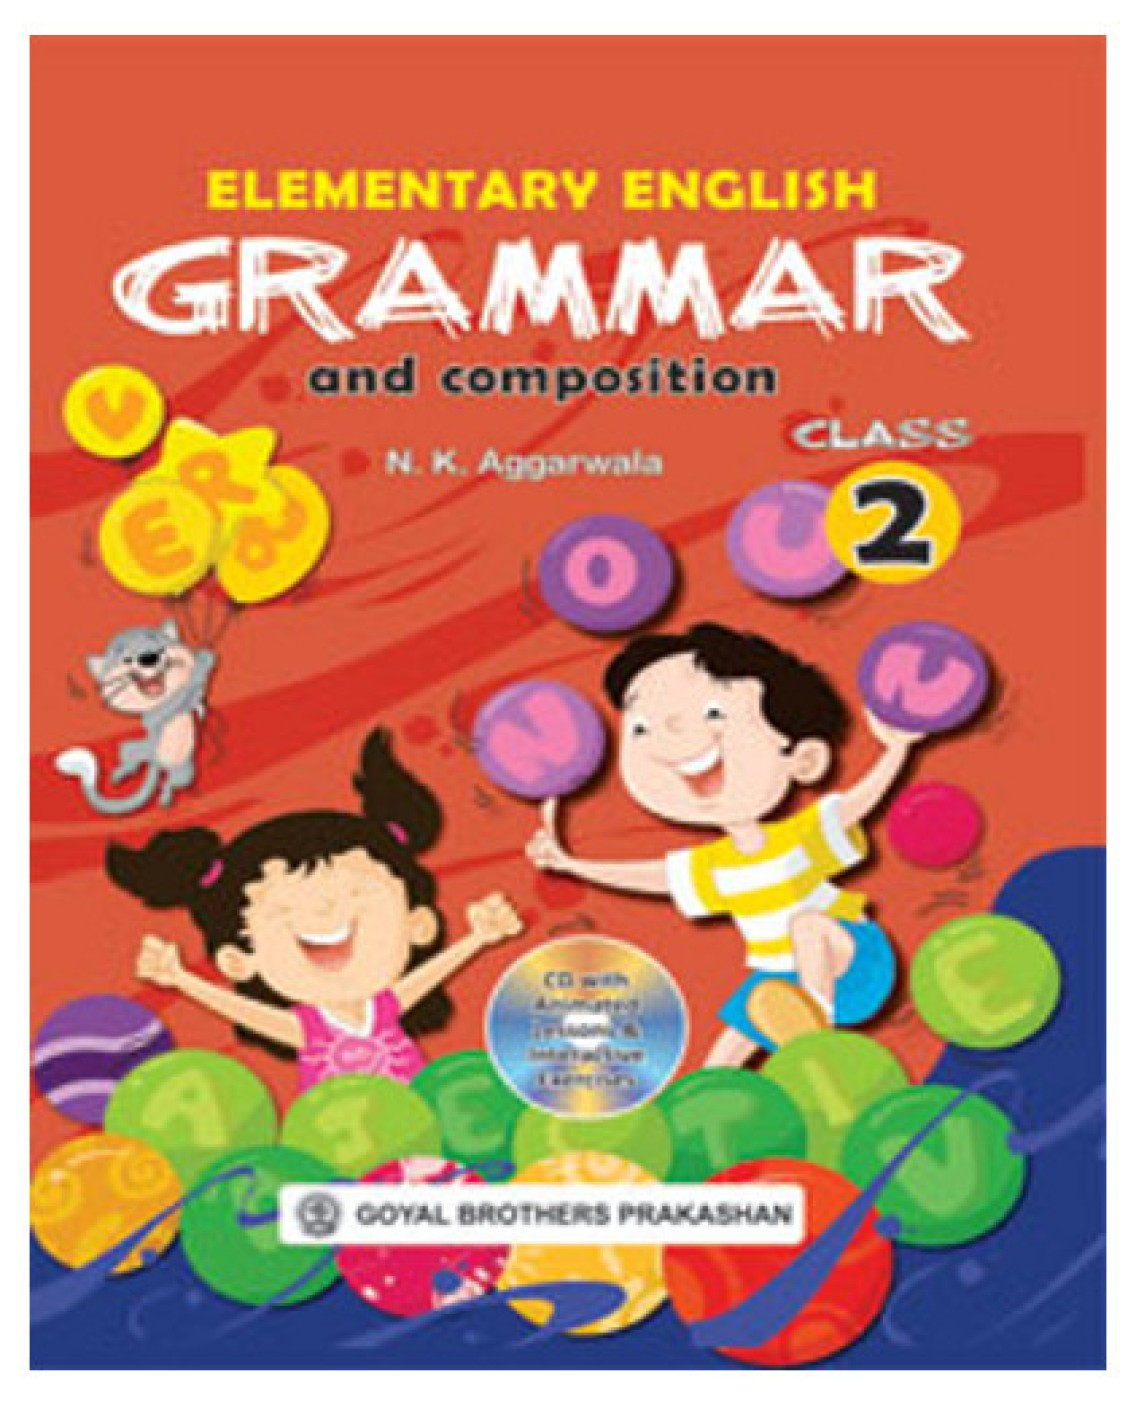 Elementary English Grammar and Composition Class 2 (With CD). Share